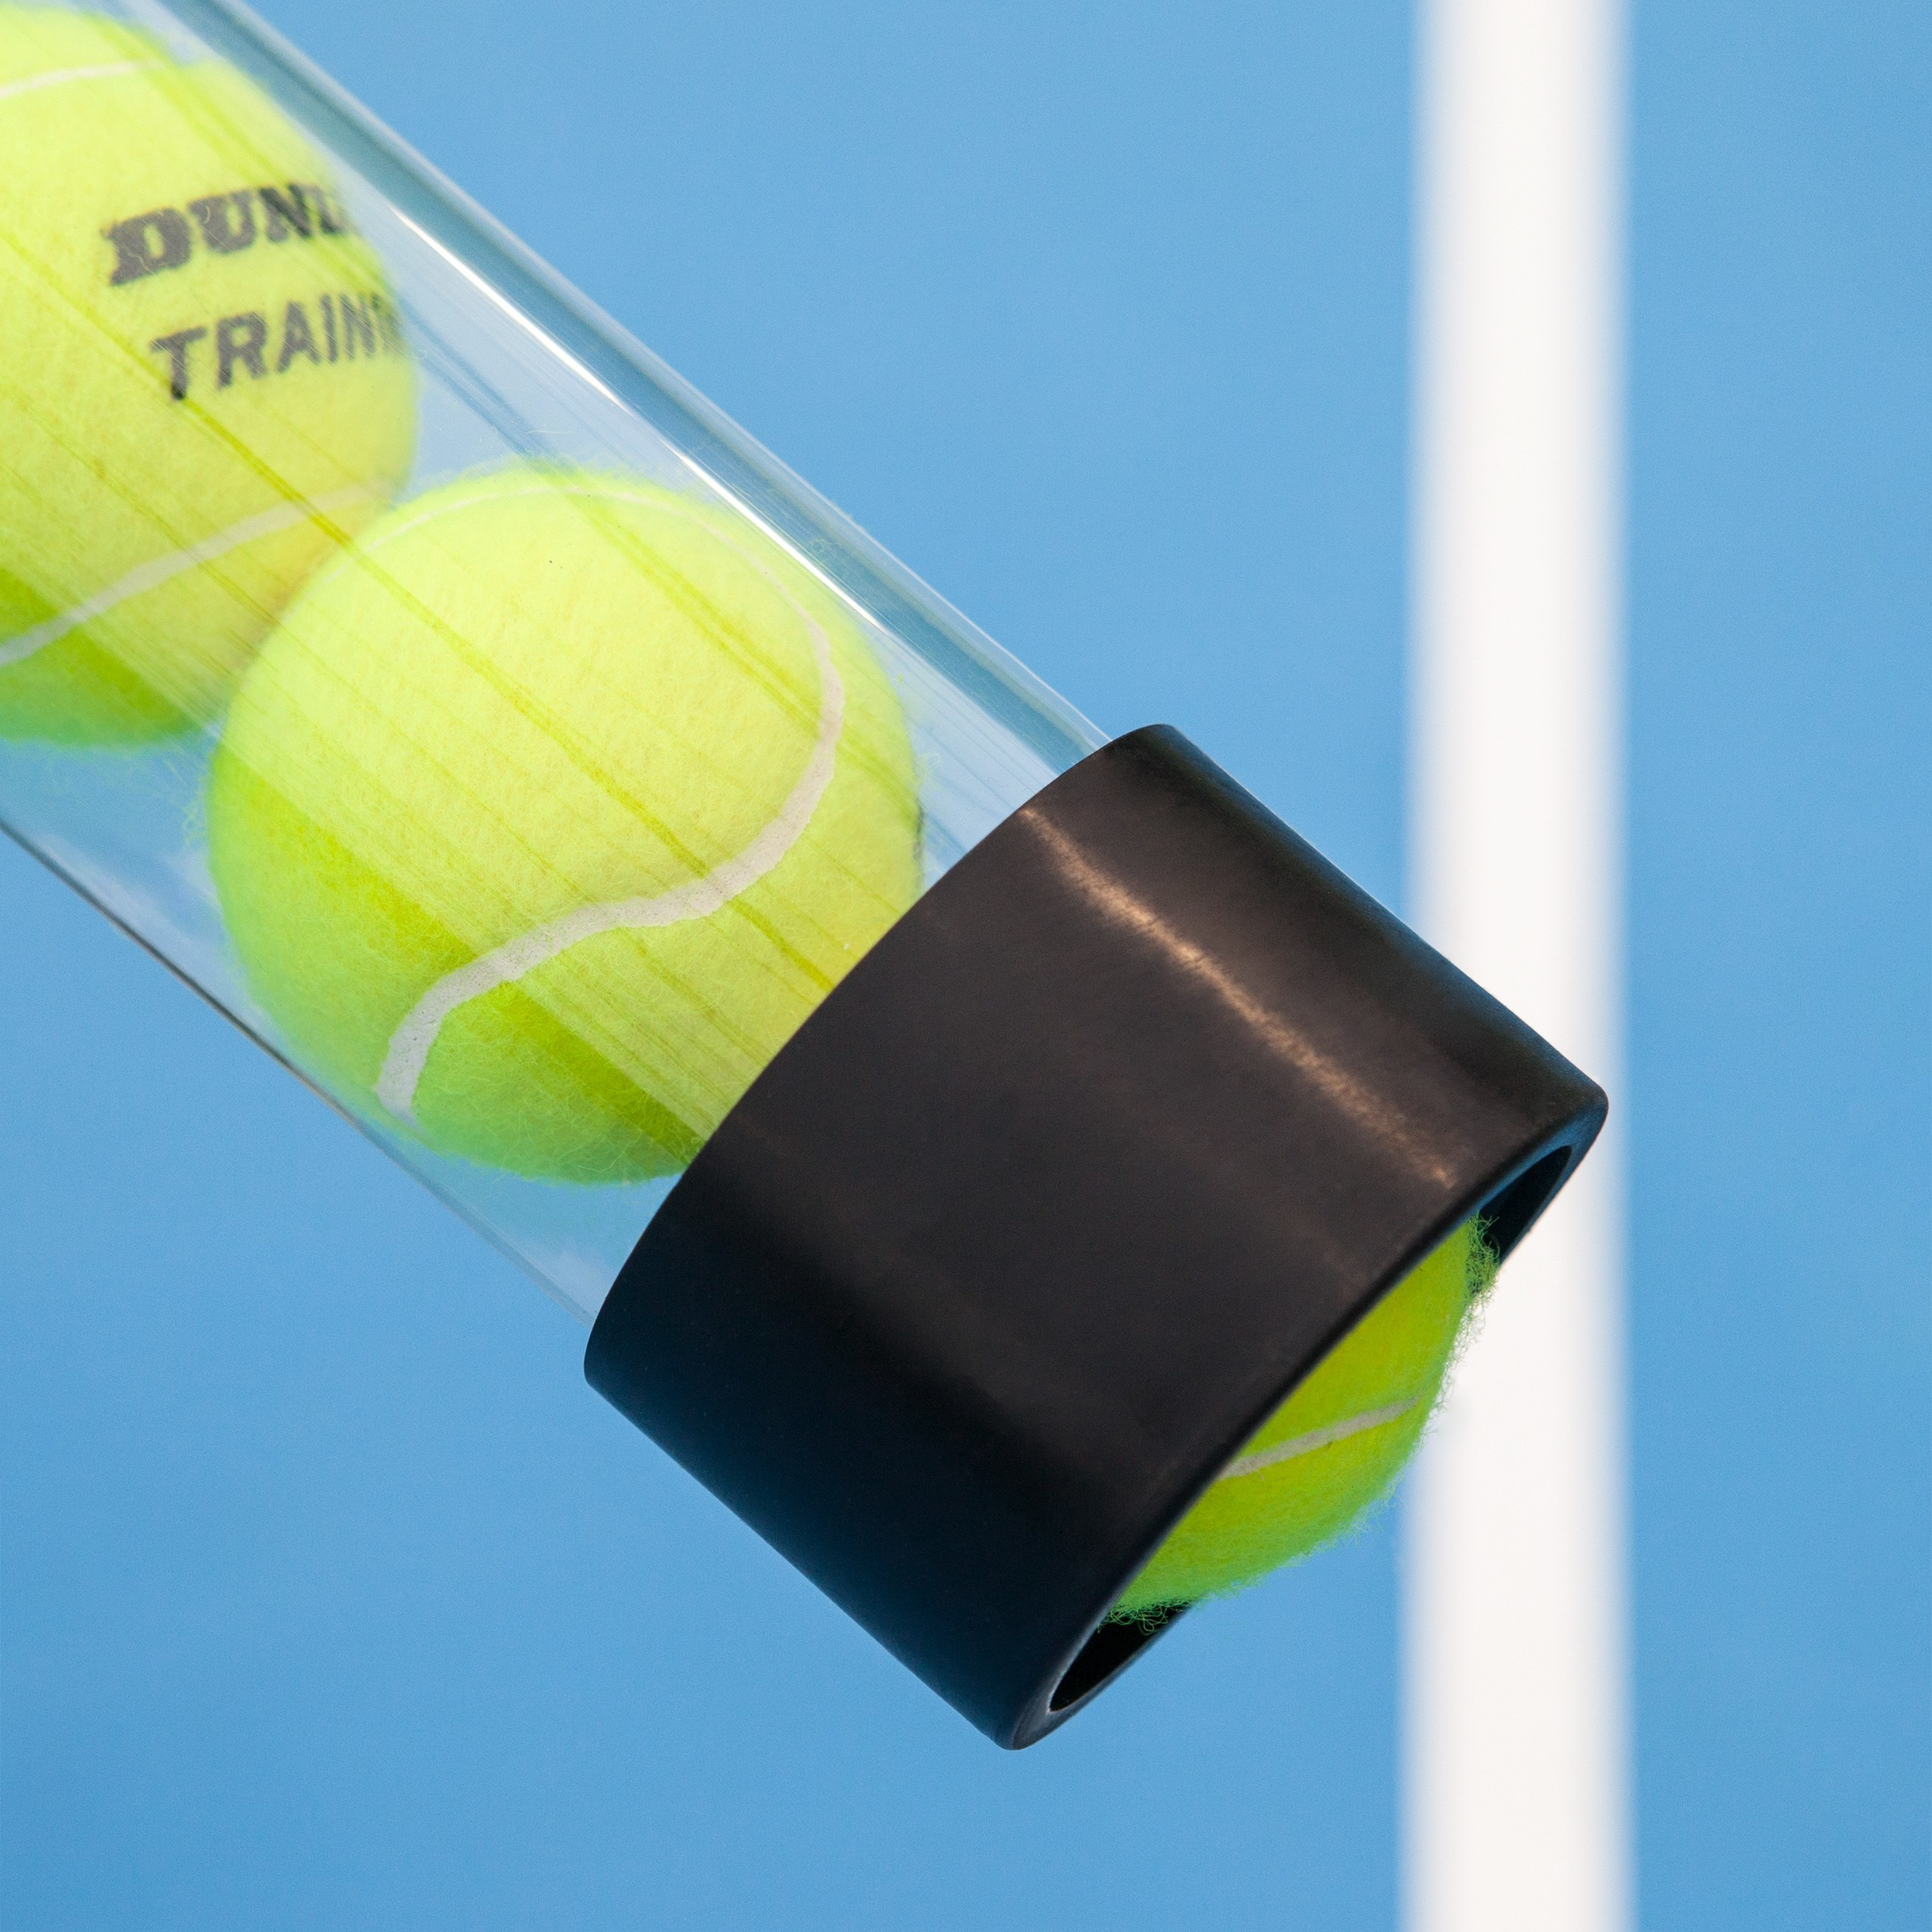 Tennis Ball Collector Tube Rubber Base